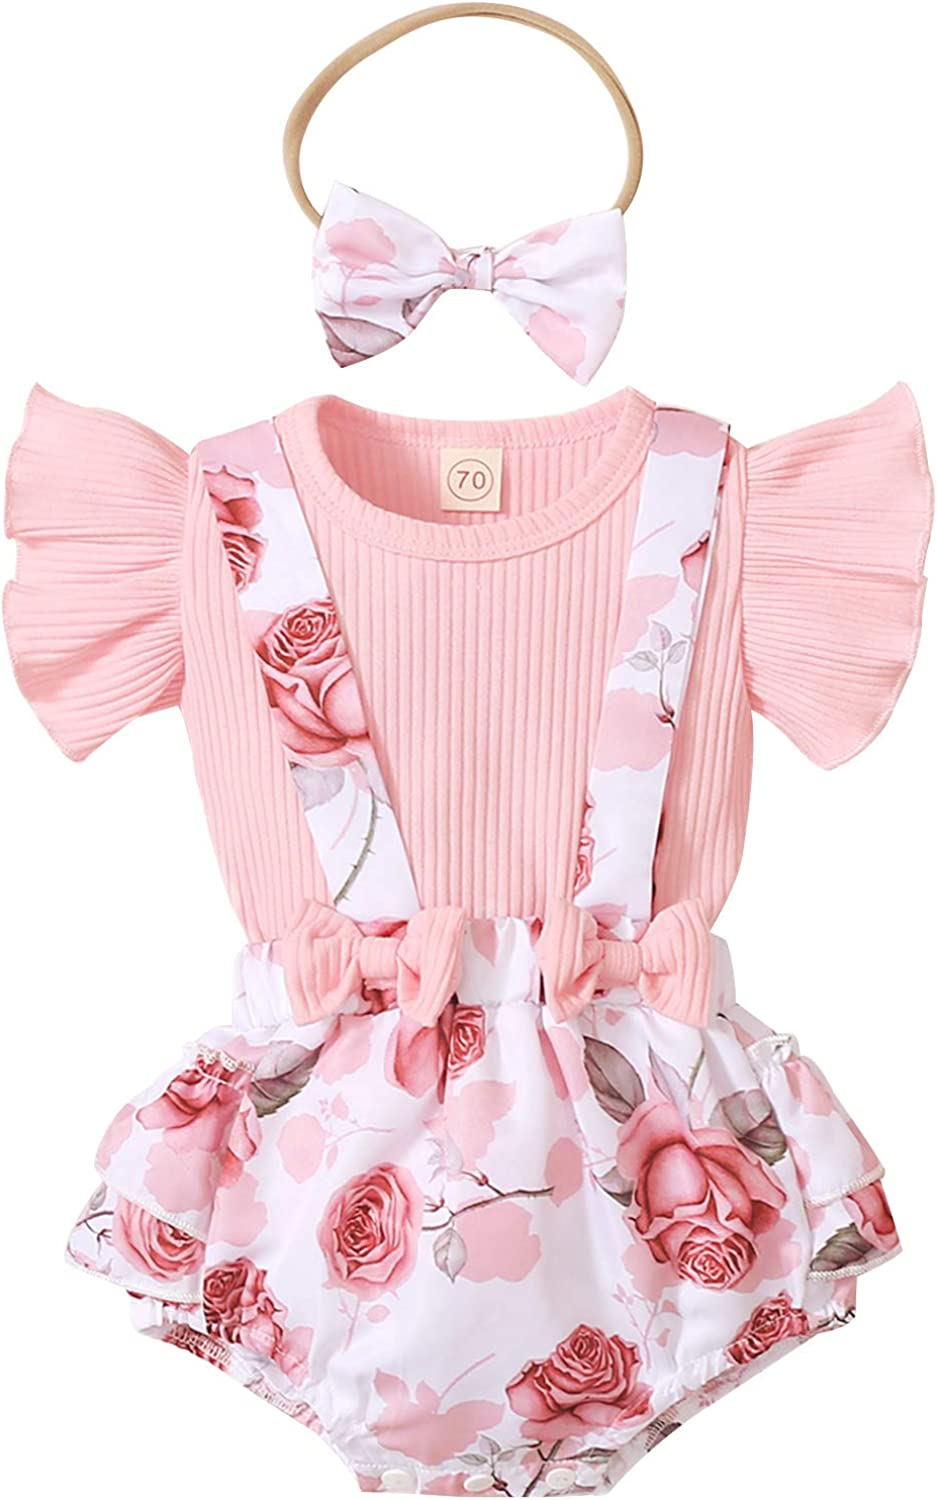 Summer Newborn Infant Baby Girl Floral Clothes Outfit Ruffled Flare Sleeve Ribbed Tops Suspender Shorts Set 3PCS